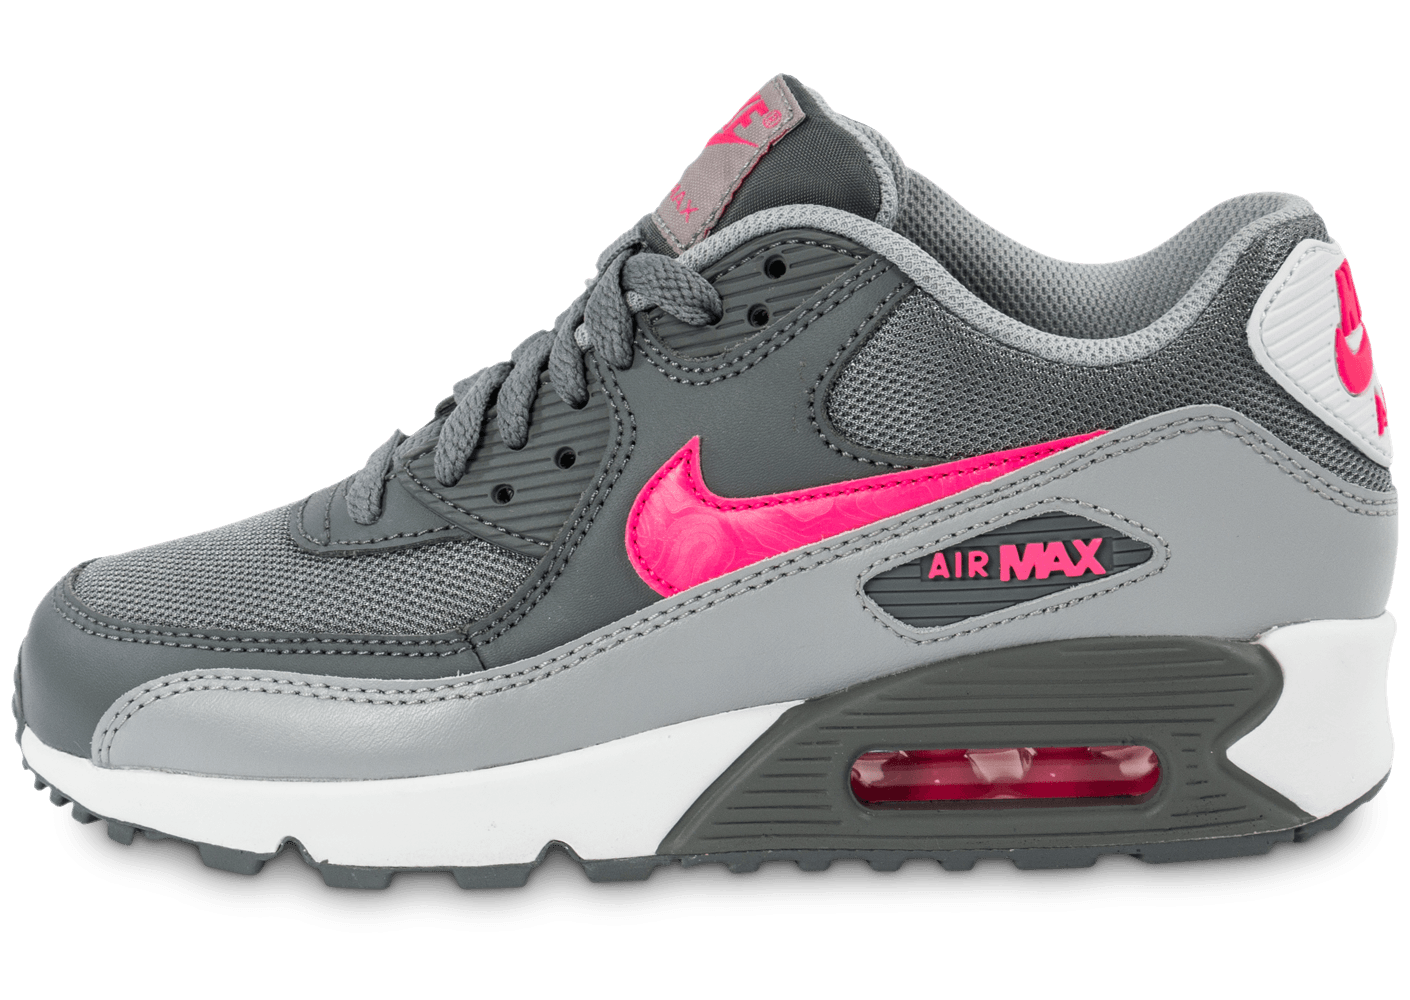 new arrival 0f5a4 ed5e7 nike air max 90 grise et rose